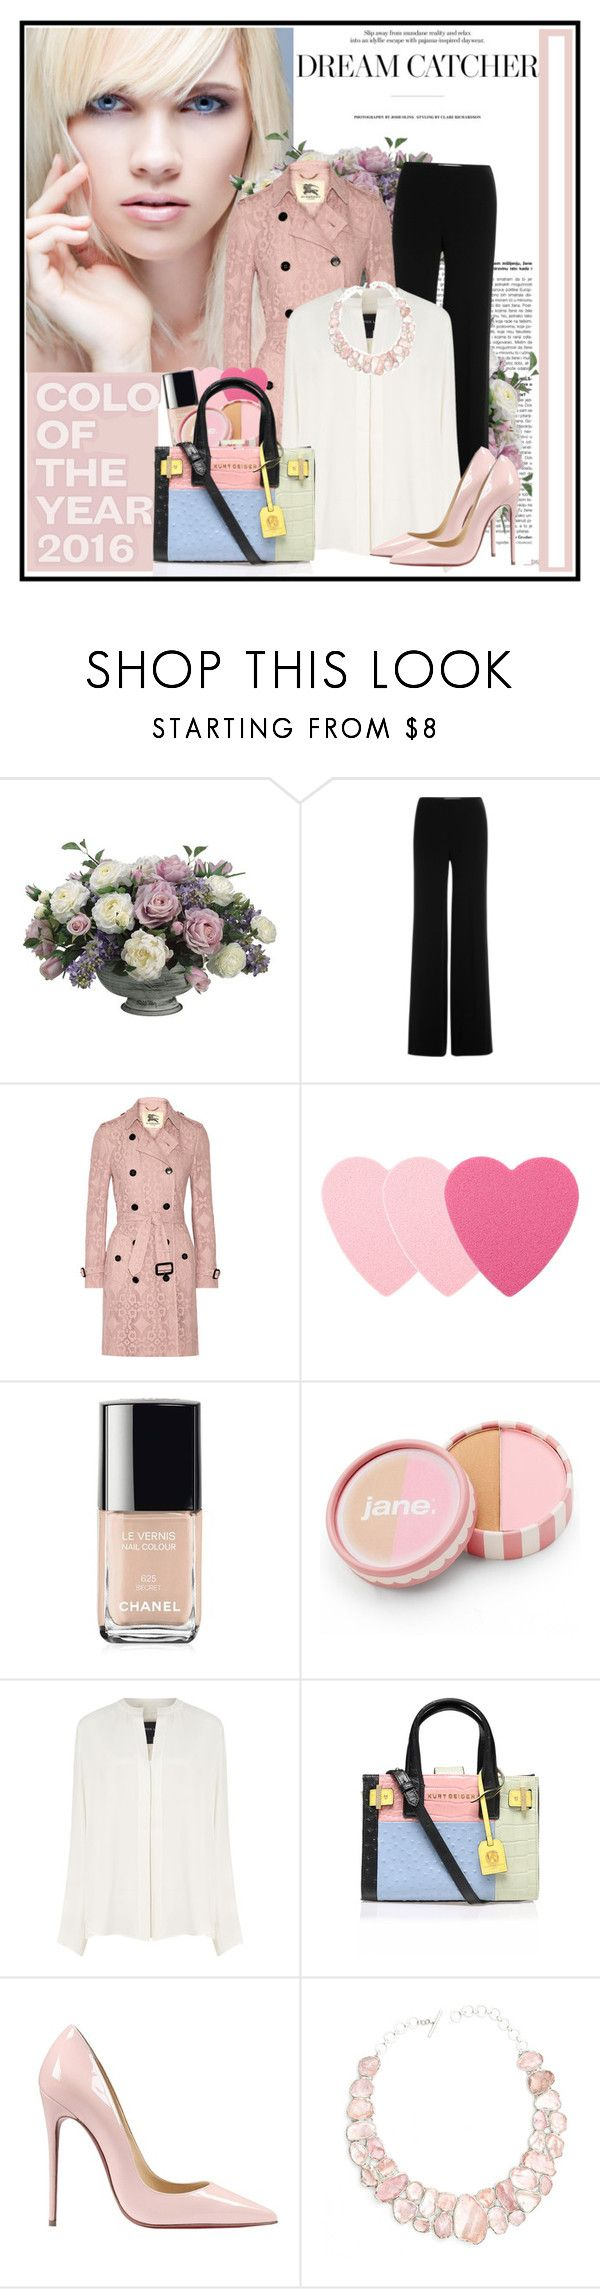 """Pretty Pastel Trench Coats..."" by cindy88 ❤ liked on Polyvore featuring Allstate Floral, Diane Von Furstenberg, Burberry, Sephora Collection, Chanel, jane, Derek Lam, Kurt Geiger, Christian Louboutin and Poppy Jewellery"